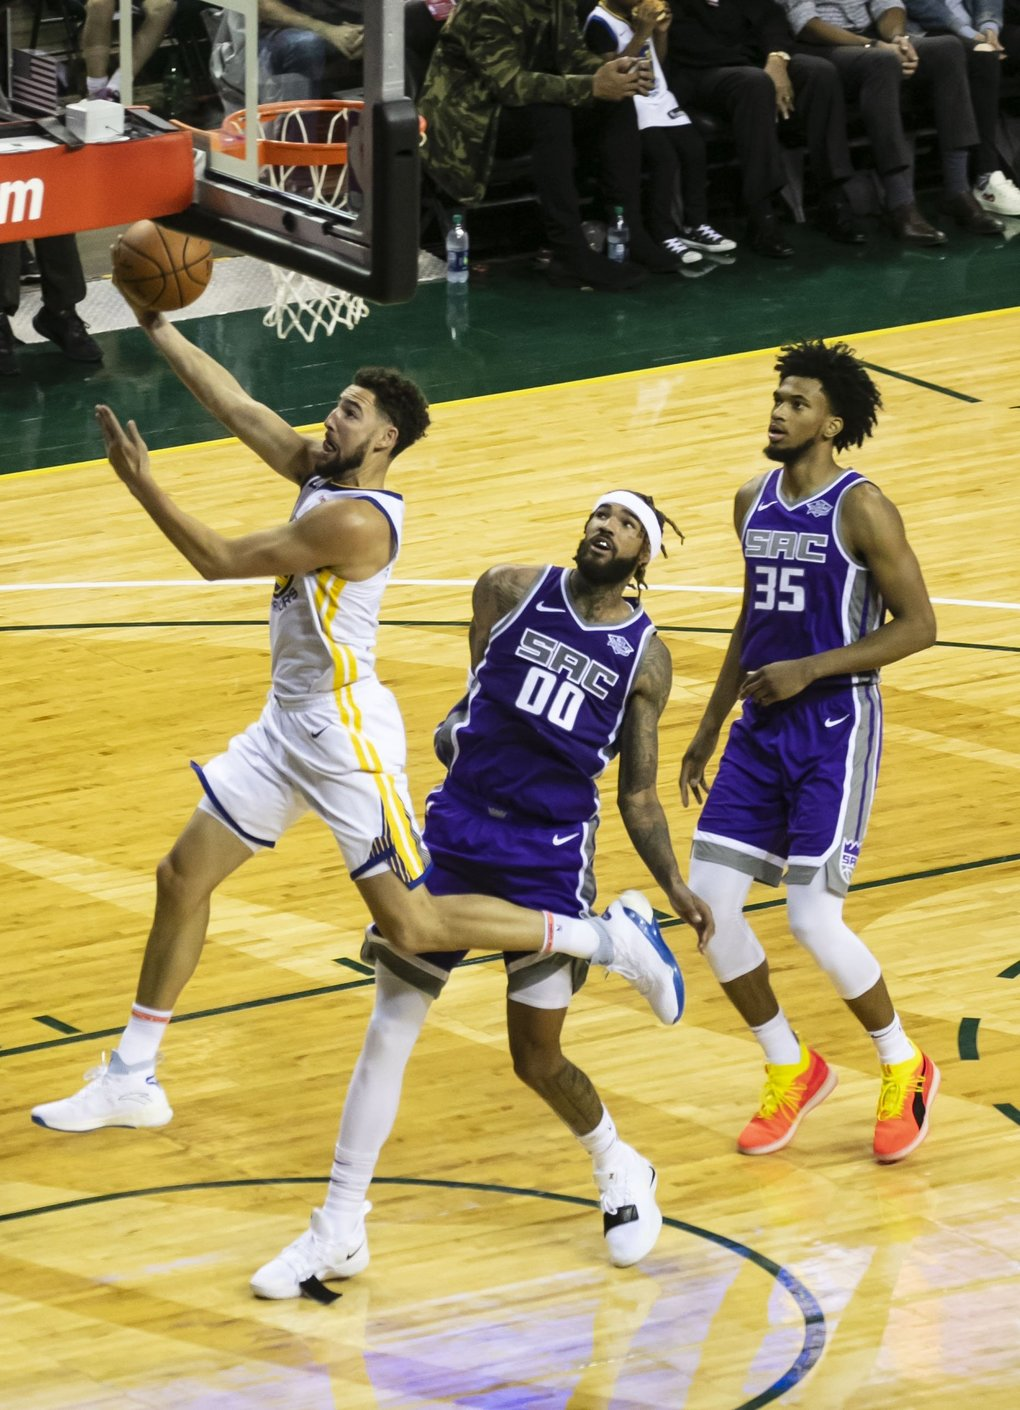 Guard Klay Thompson (11) drives to the basket during the Golden State Warriors versus Sacramento Kings game in Seattle Friday, Oct. 5, 2018. (Erika Schultz / The Seattle Times)